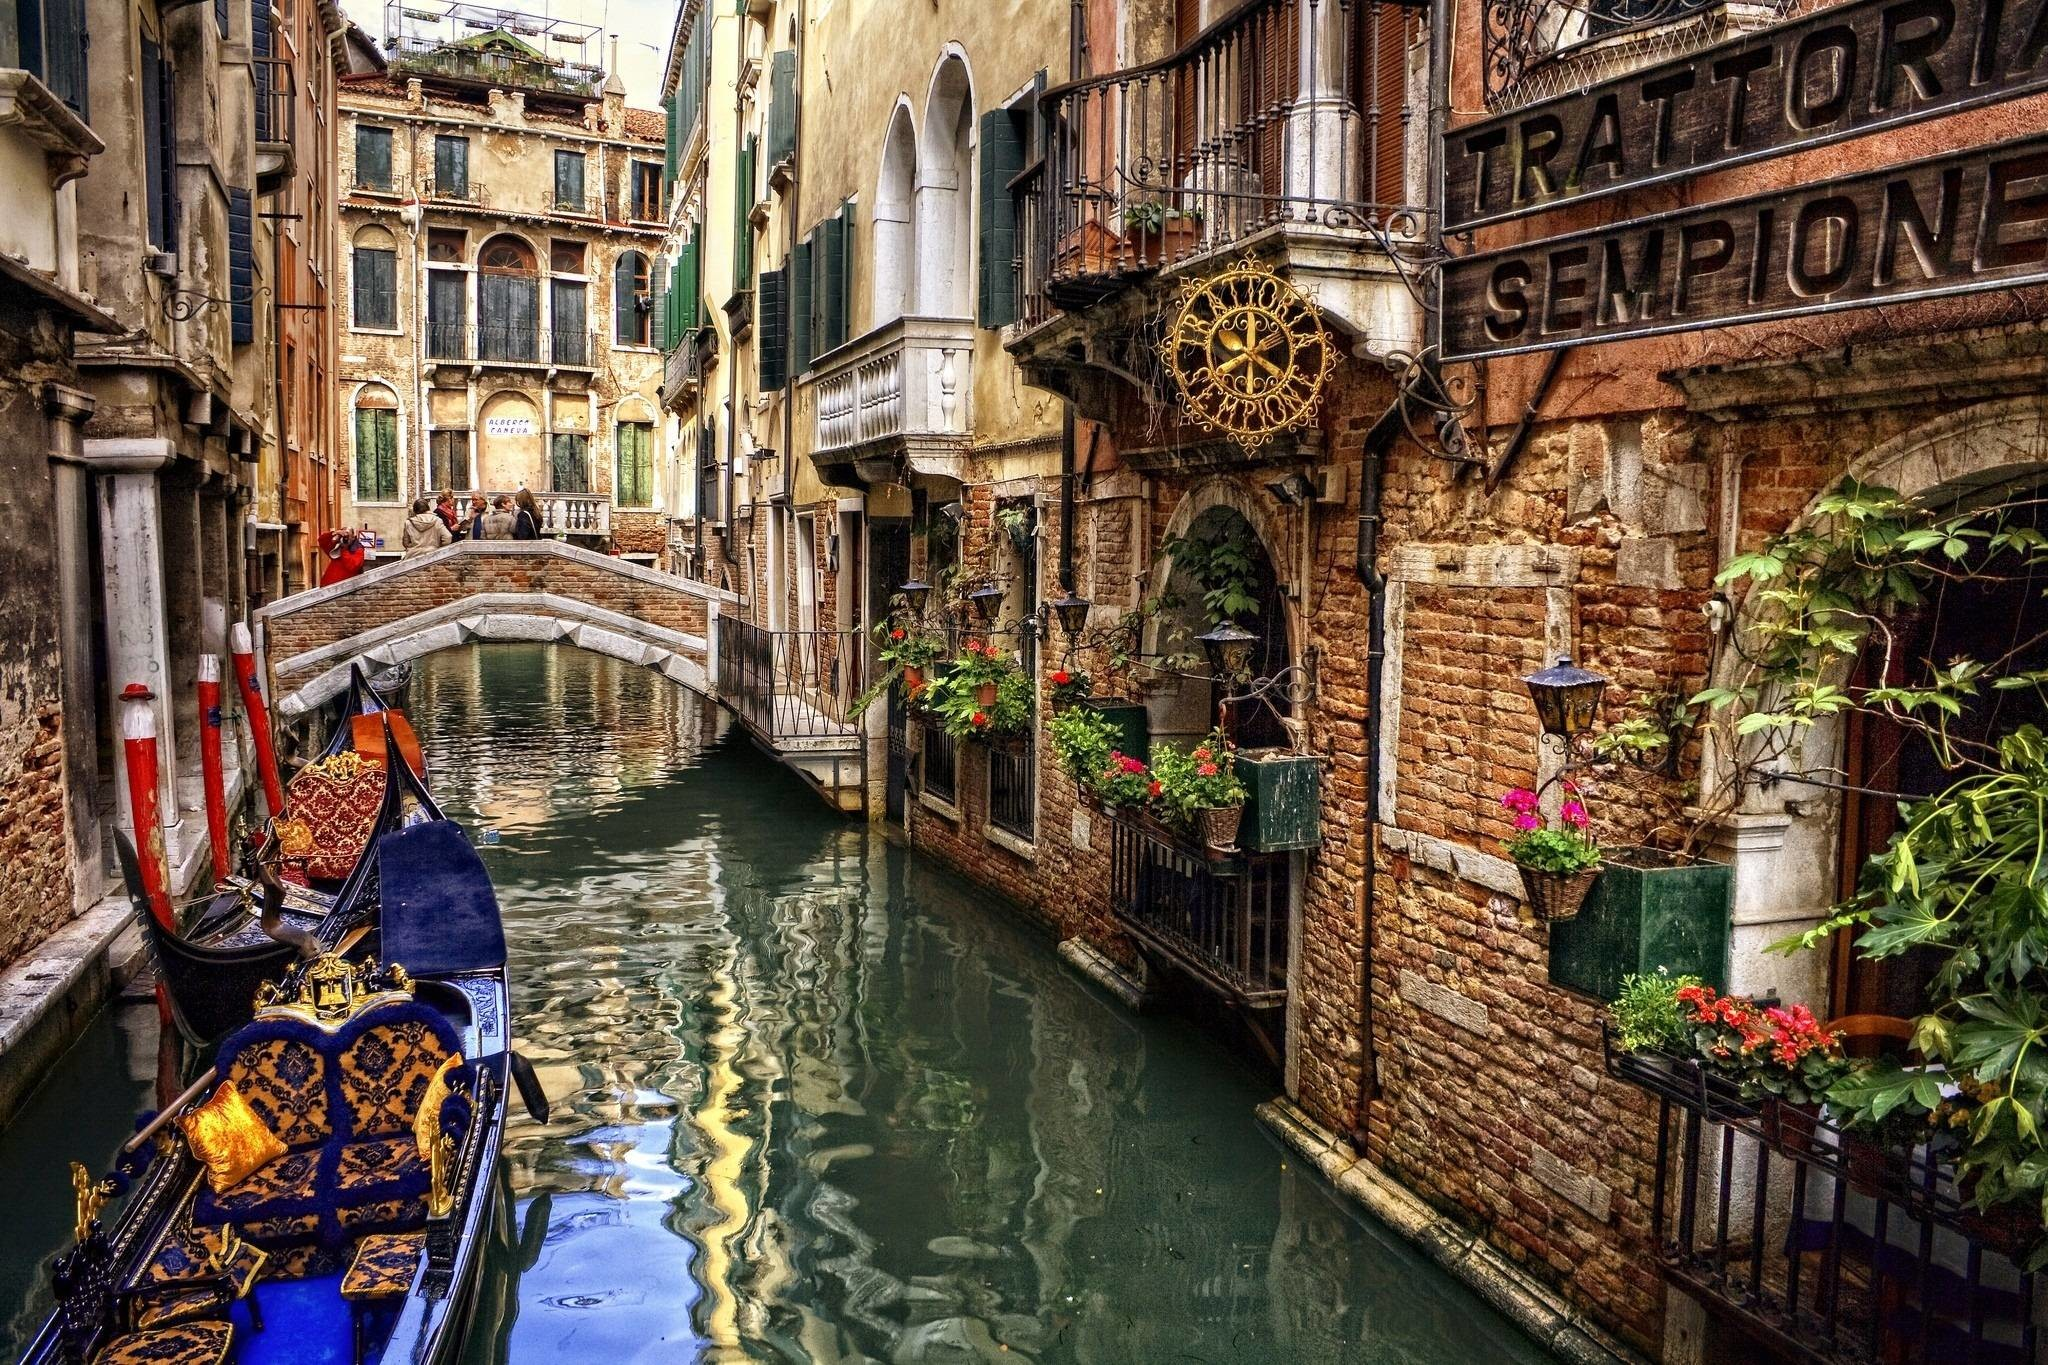 2048x1365 Venice Italy Wallpaper Stock Picture #neze2 - Ehiyo.